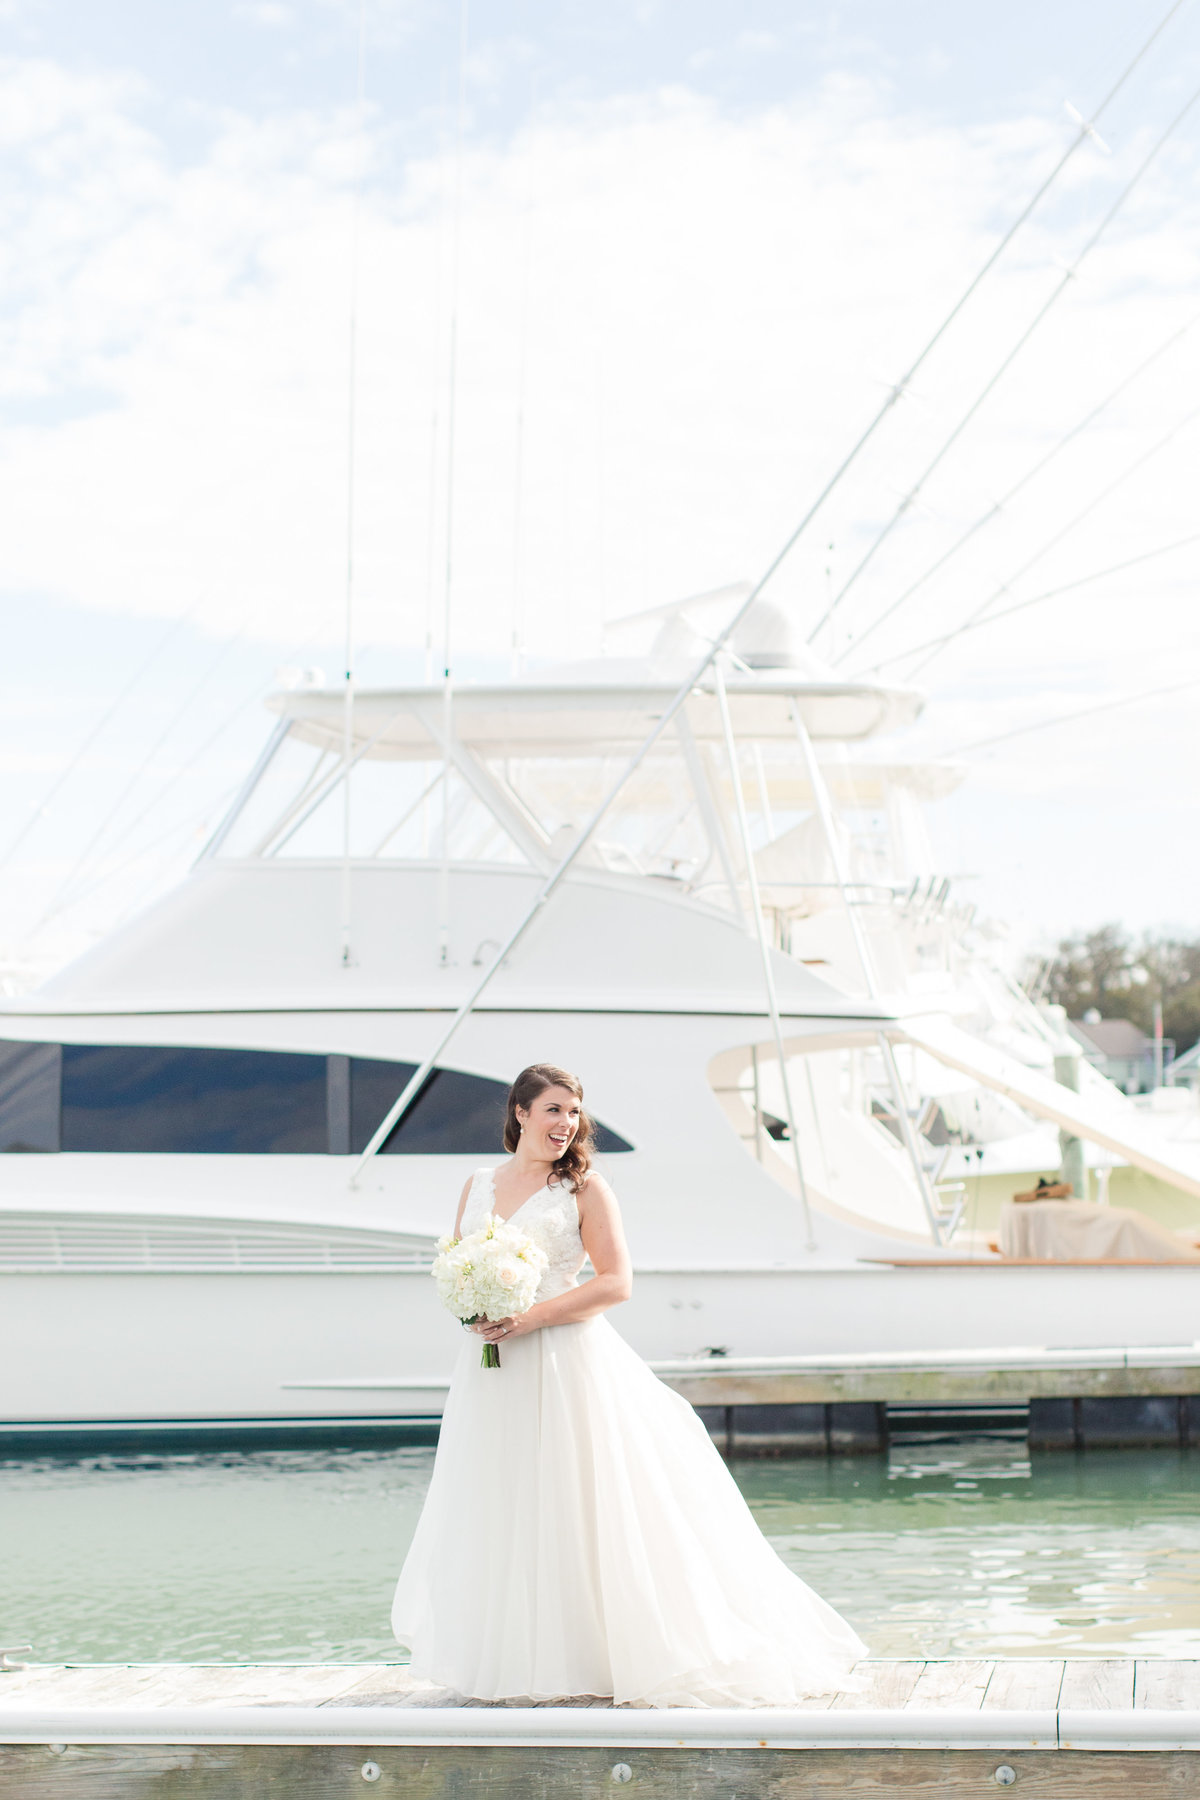 Smiling bride in front of a white yacht at The Water Table